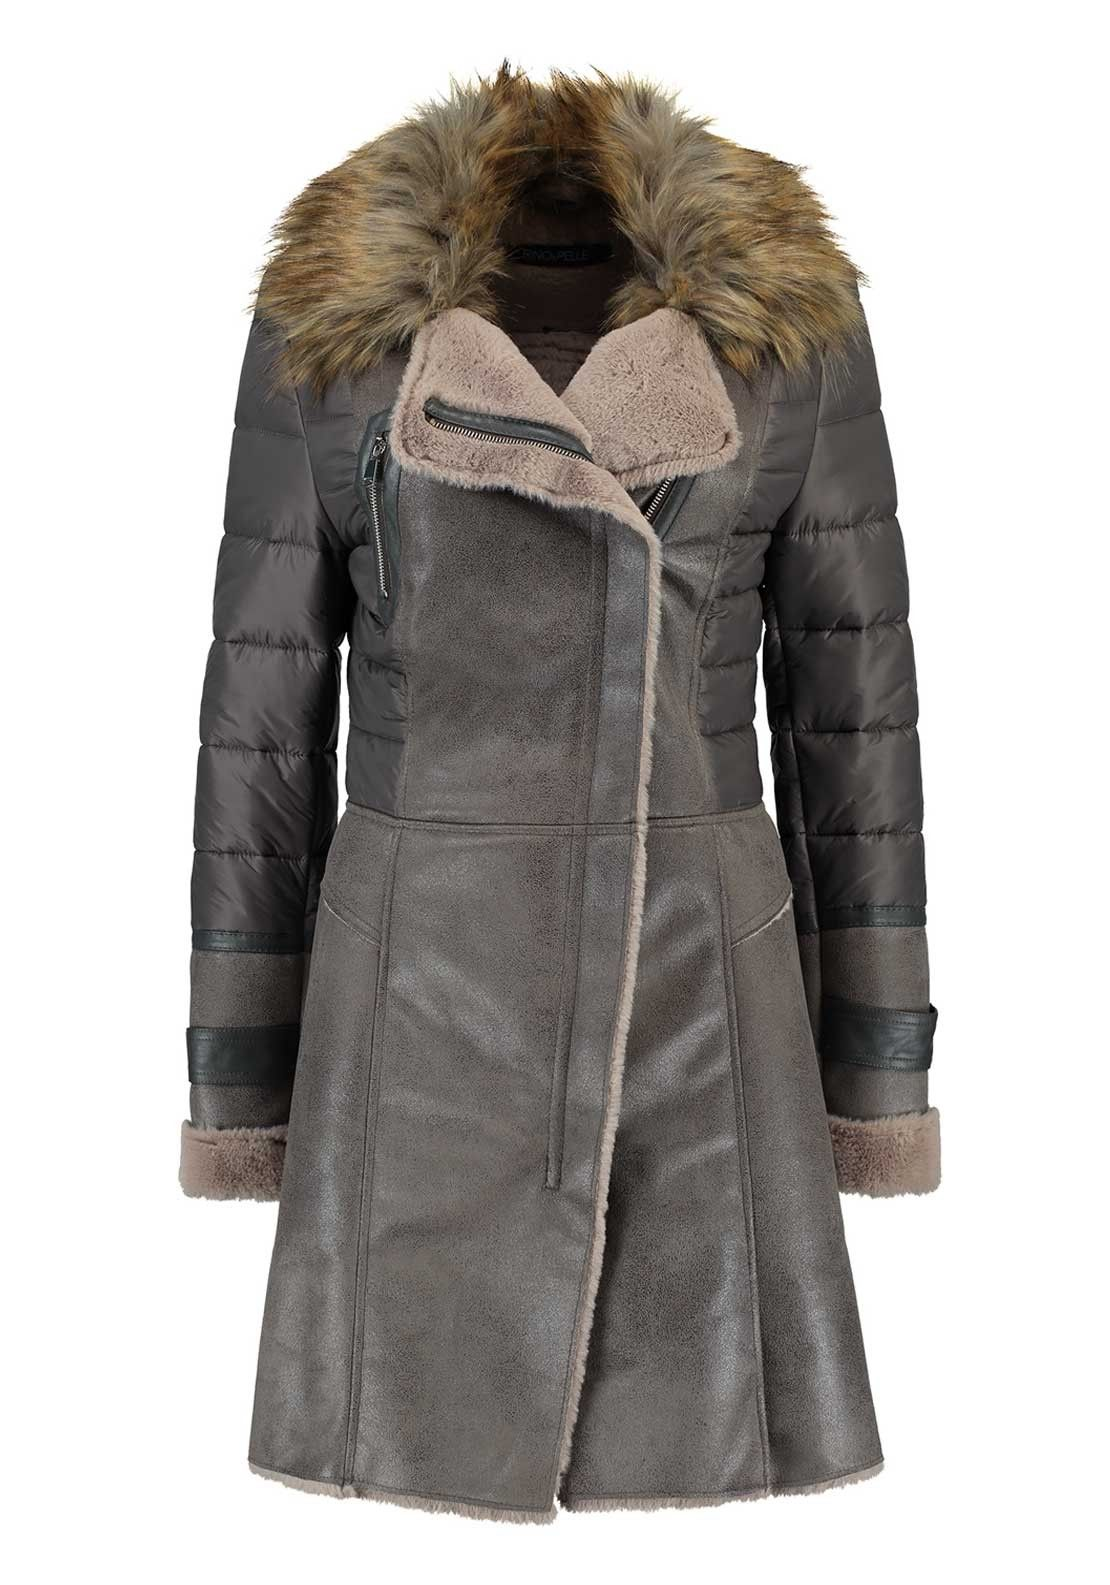 2a5eb3b27b1 Rino & Pelle Rhea Faux Suede Padded Coat, Grey | Clothes • Casual ...